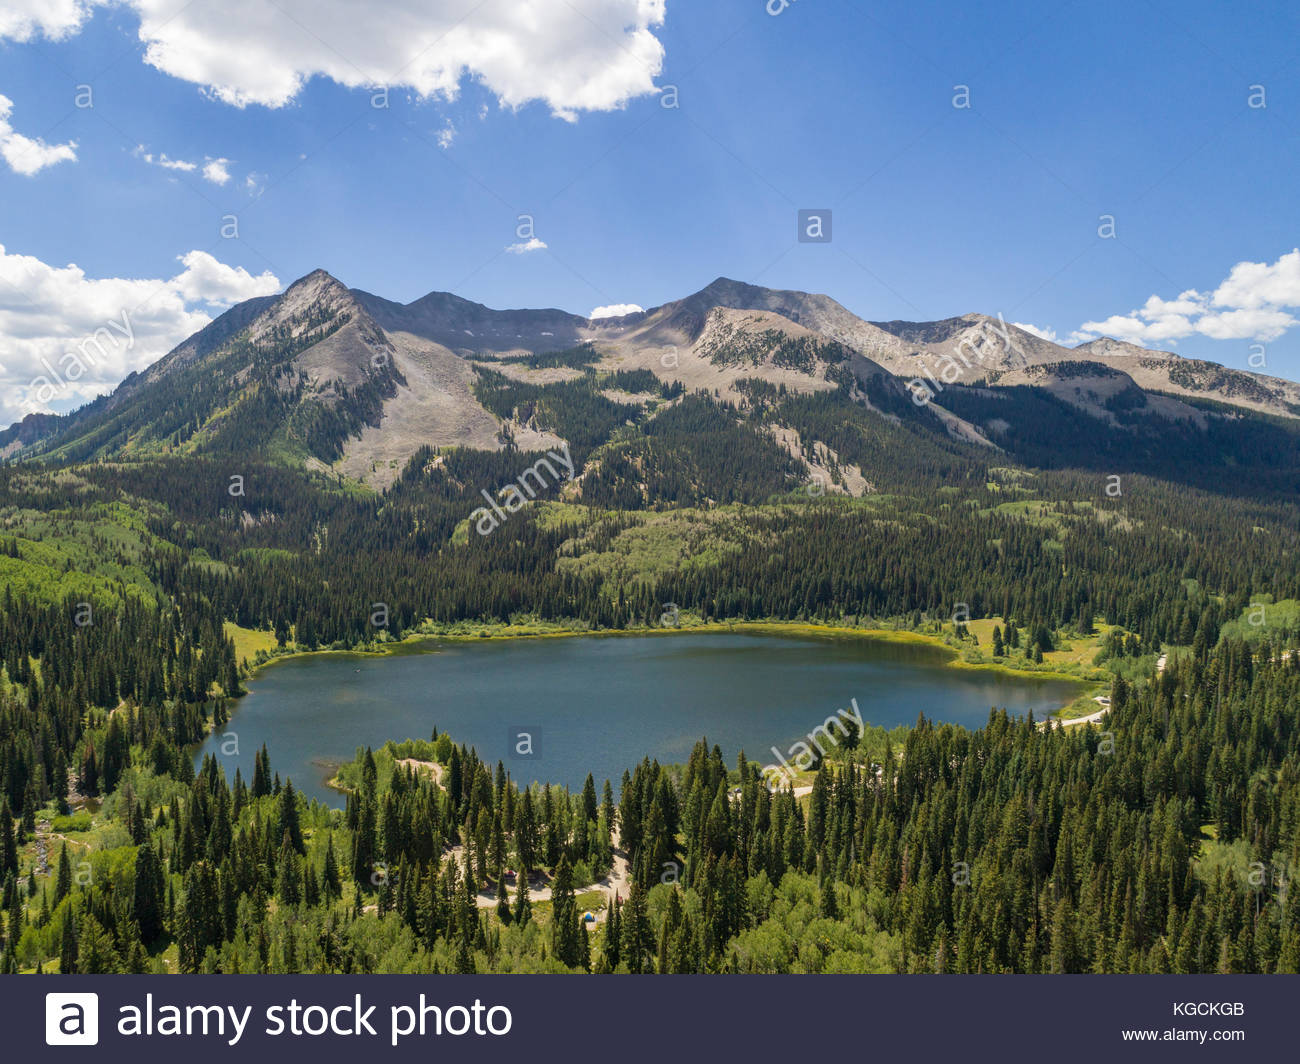 Aerial view of popular Lost Lake Slough and West Beckwith Mountain along the West Elk Loop in western Colorado. Stock Photo